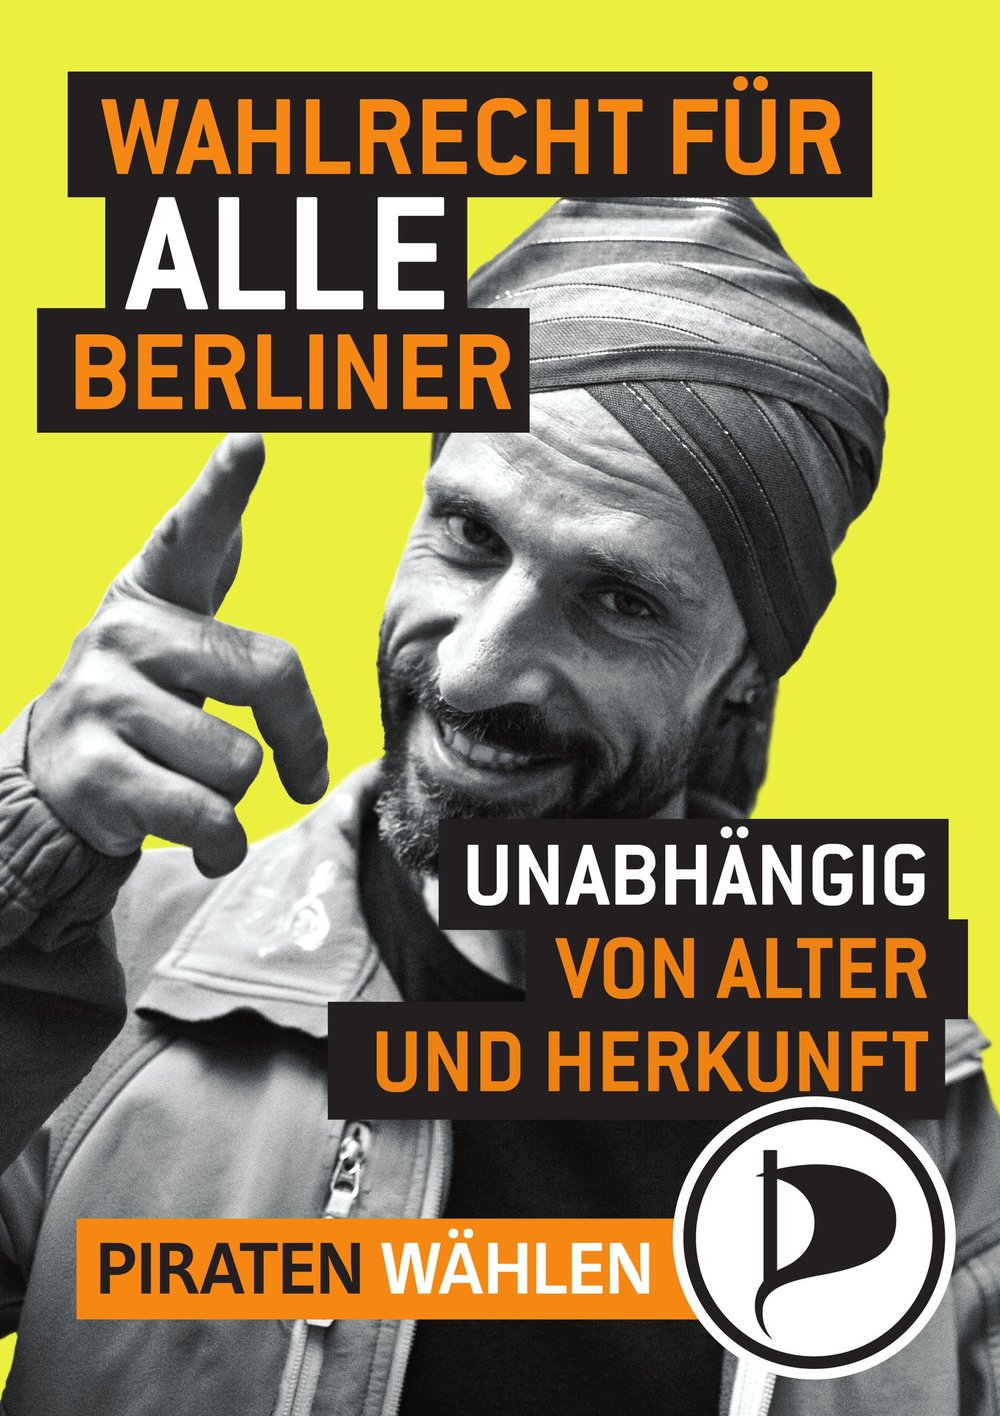 berlinplakat.04.jpg